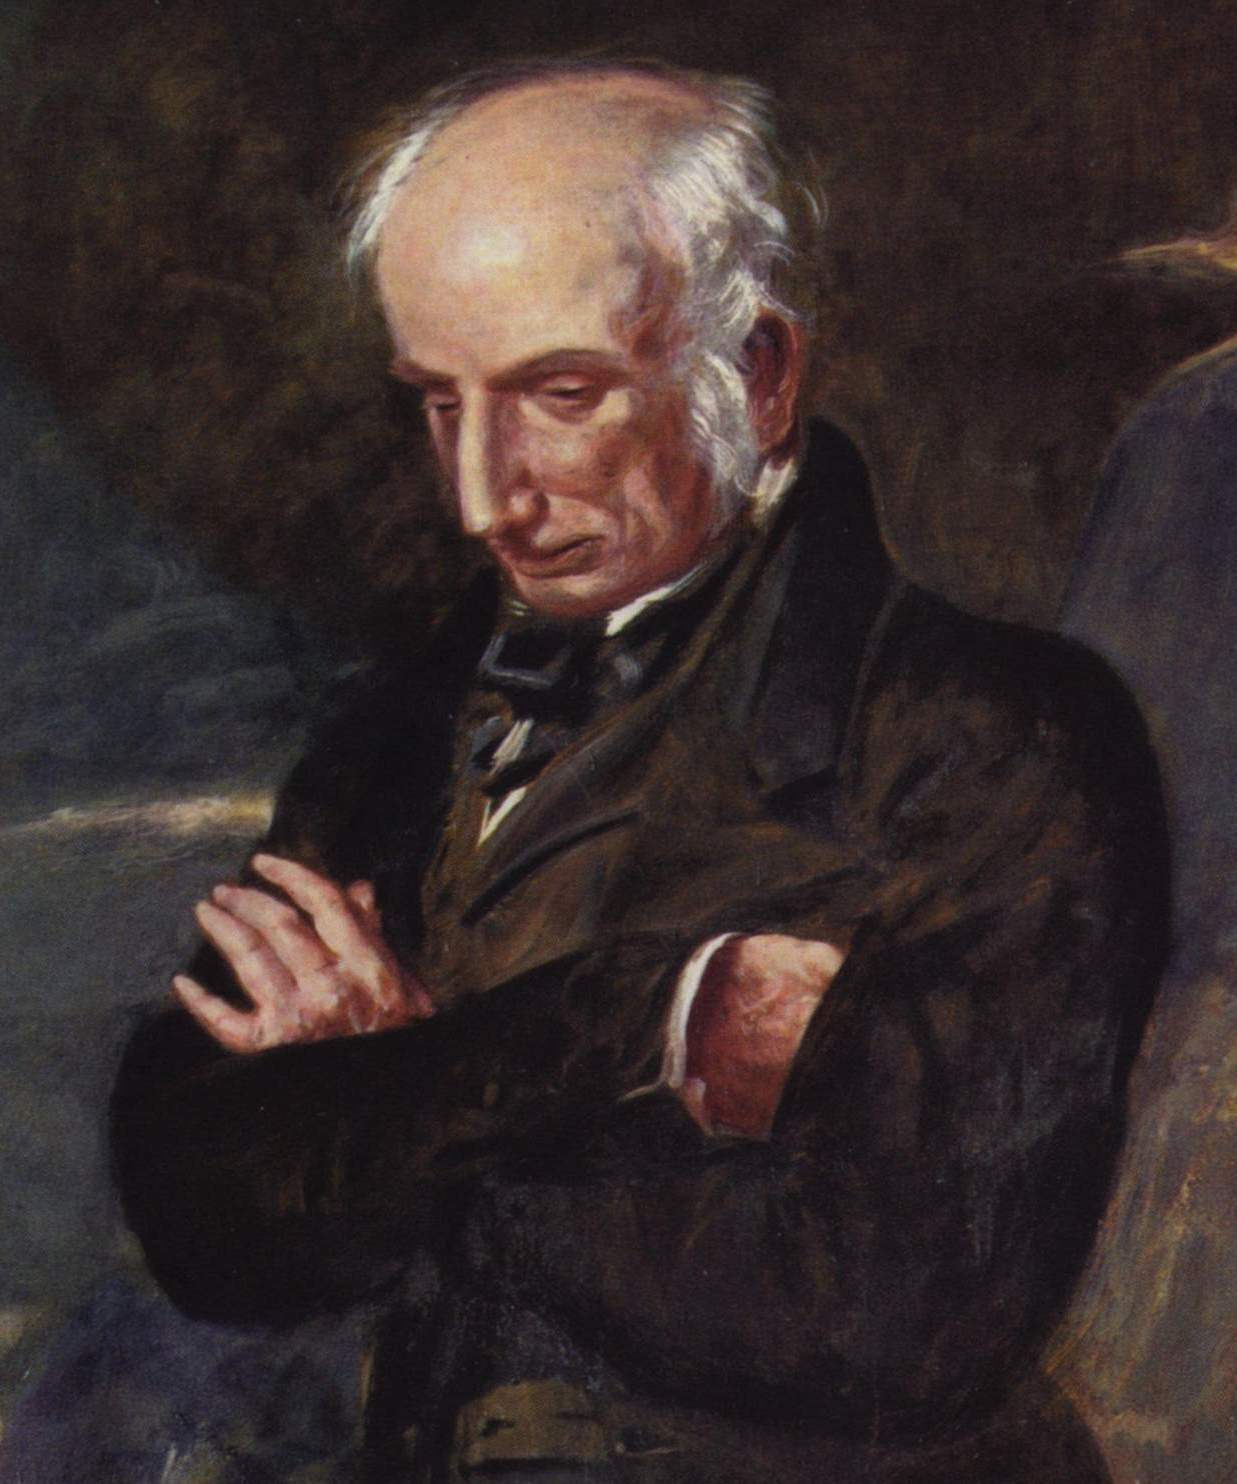 education of nature wordsworth And an orchard for a dome check out our other writing the education of nature by william wordsworth essay, like our resources on aristotle poetics essay, antitrust.